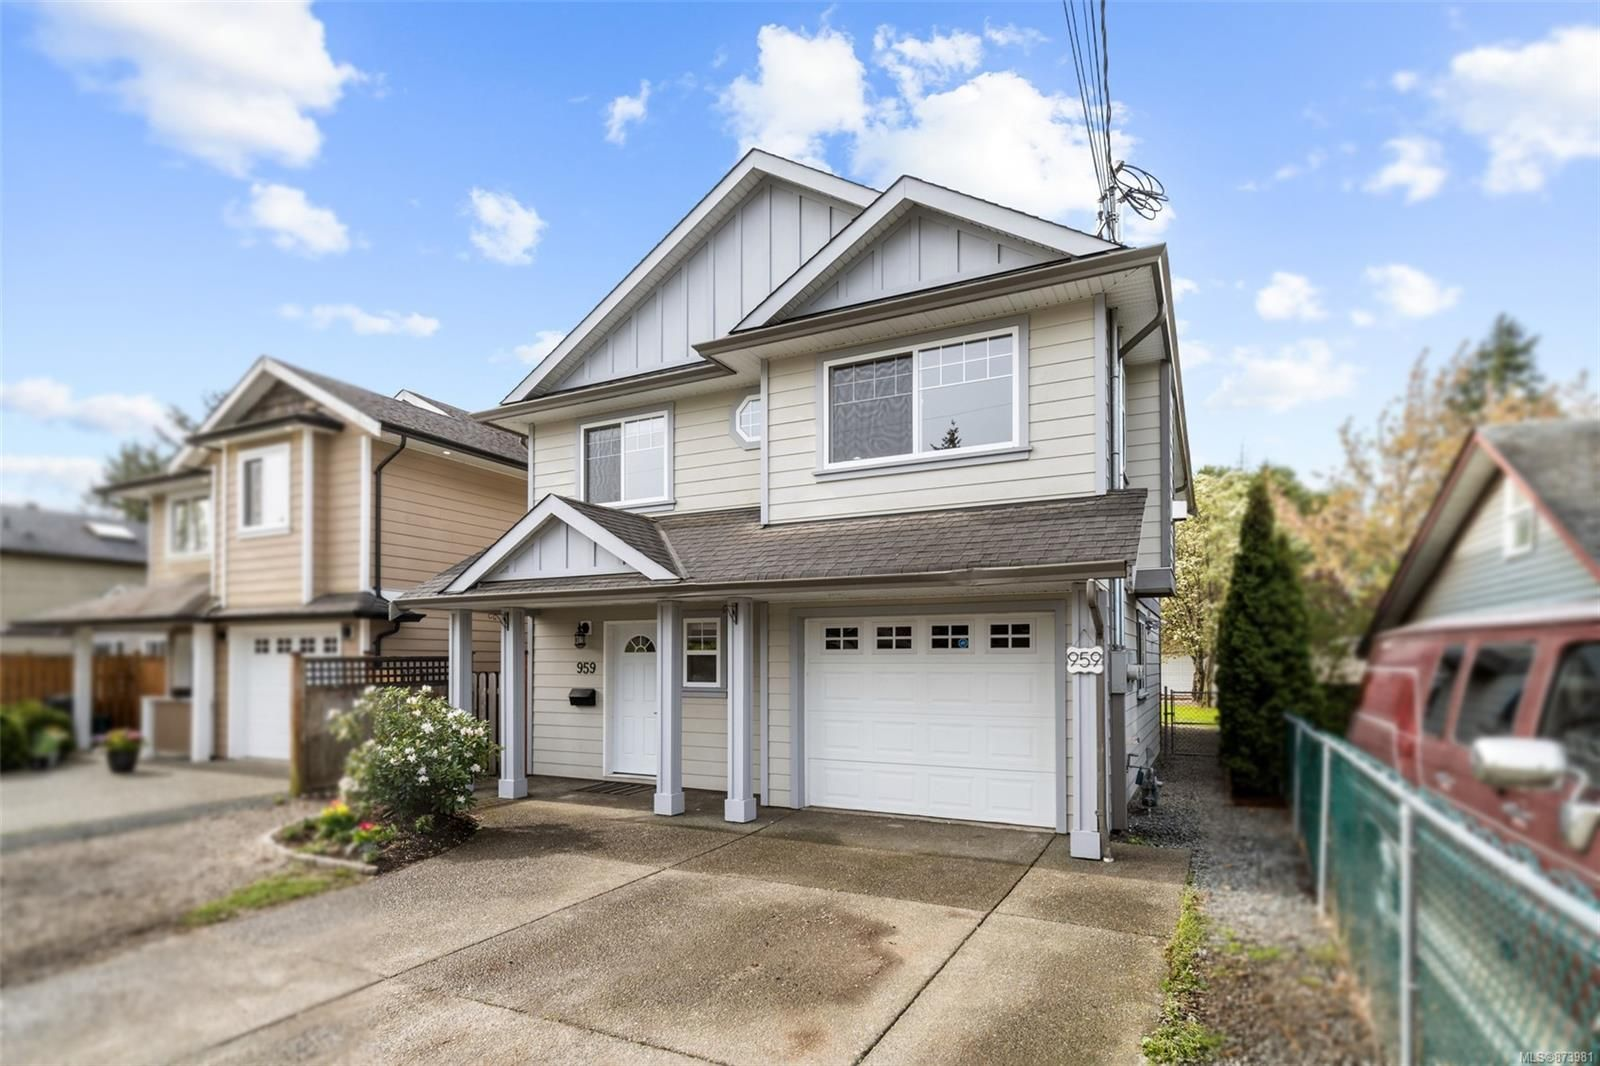 Main Photo: 959 Bray Ave in : La Langford Proper House for sale (Langford)  : MLS®# 873981